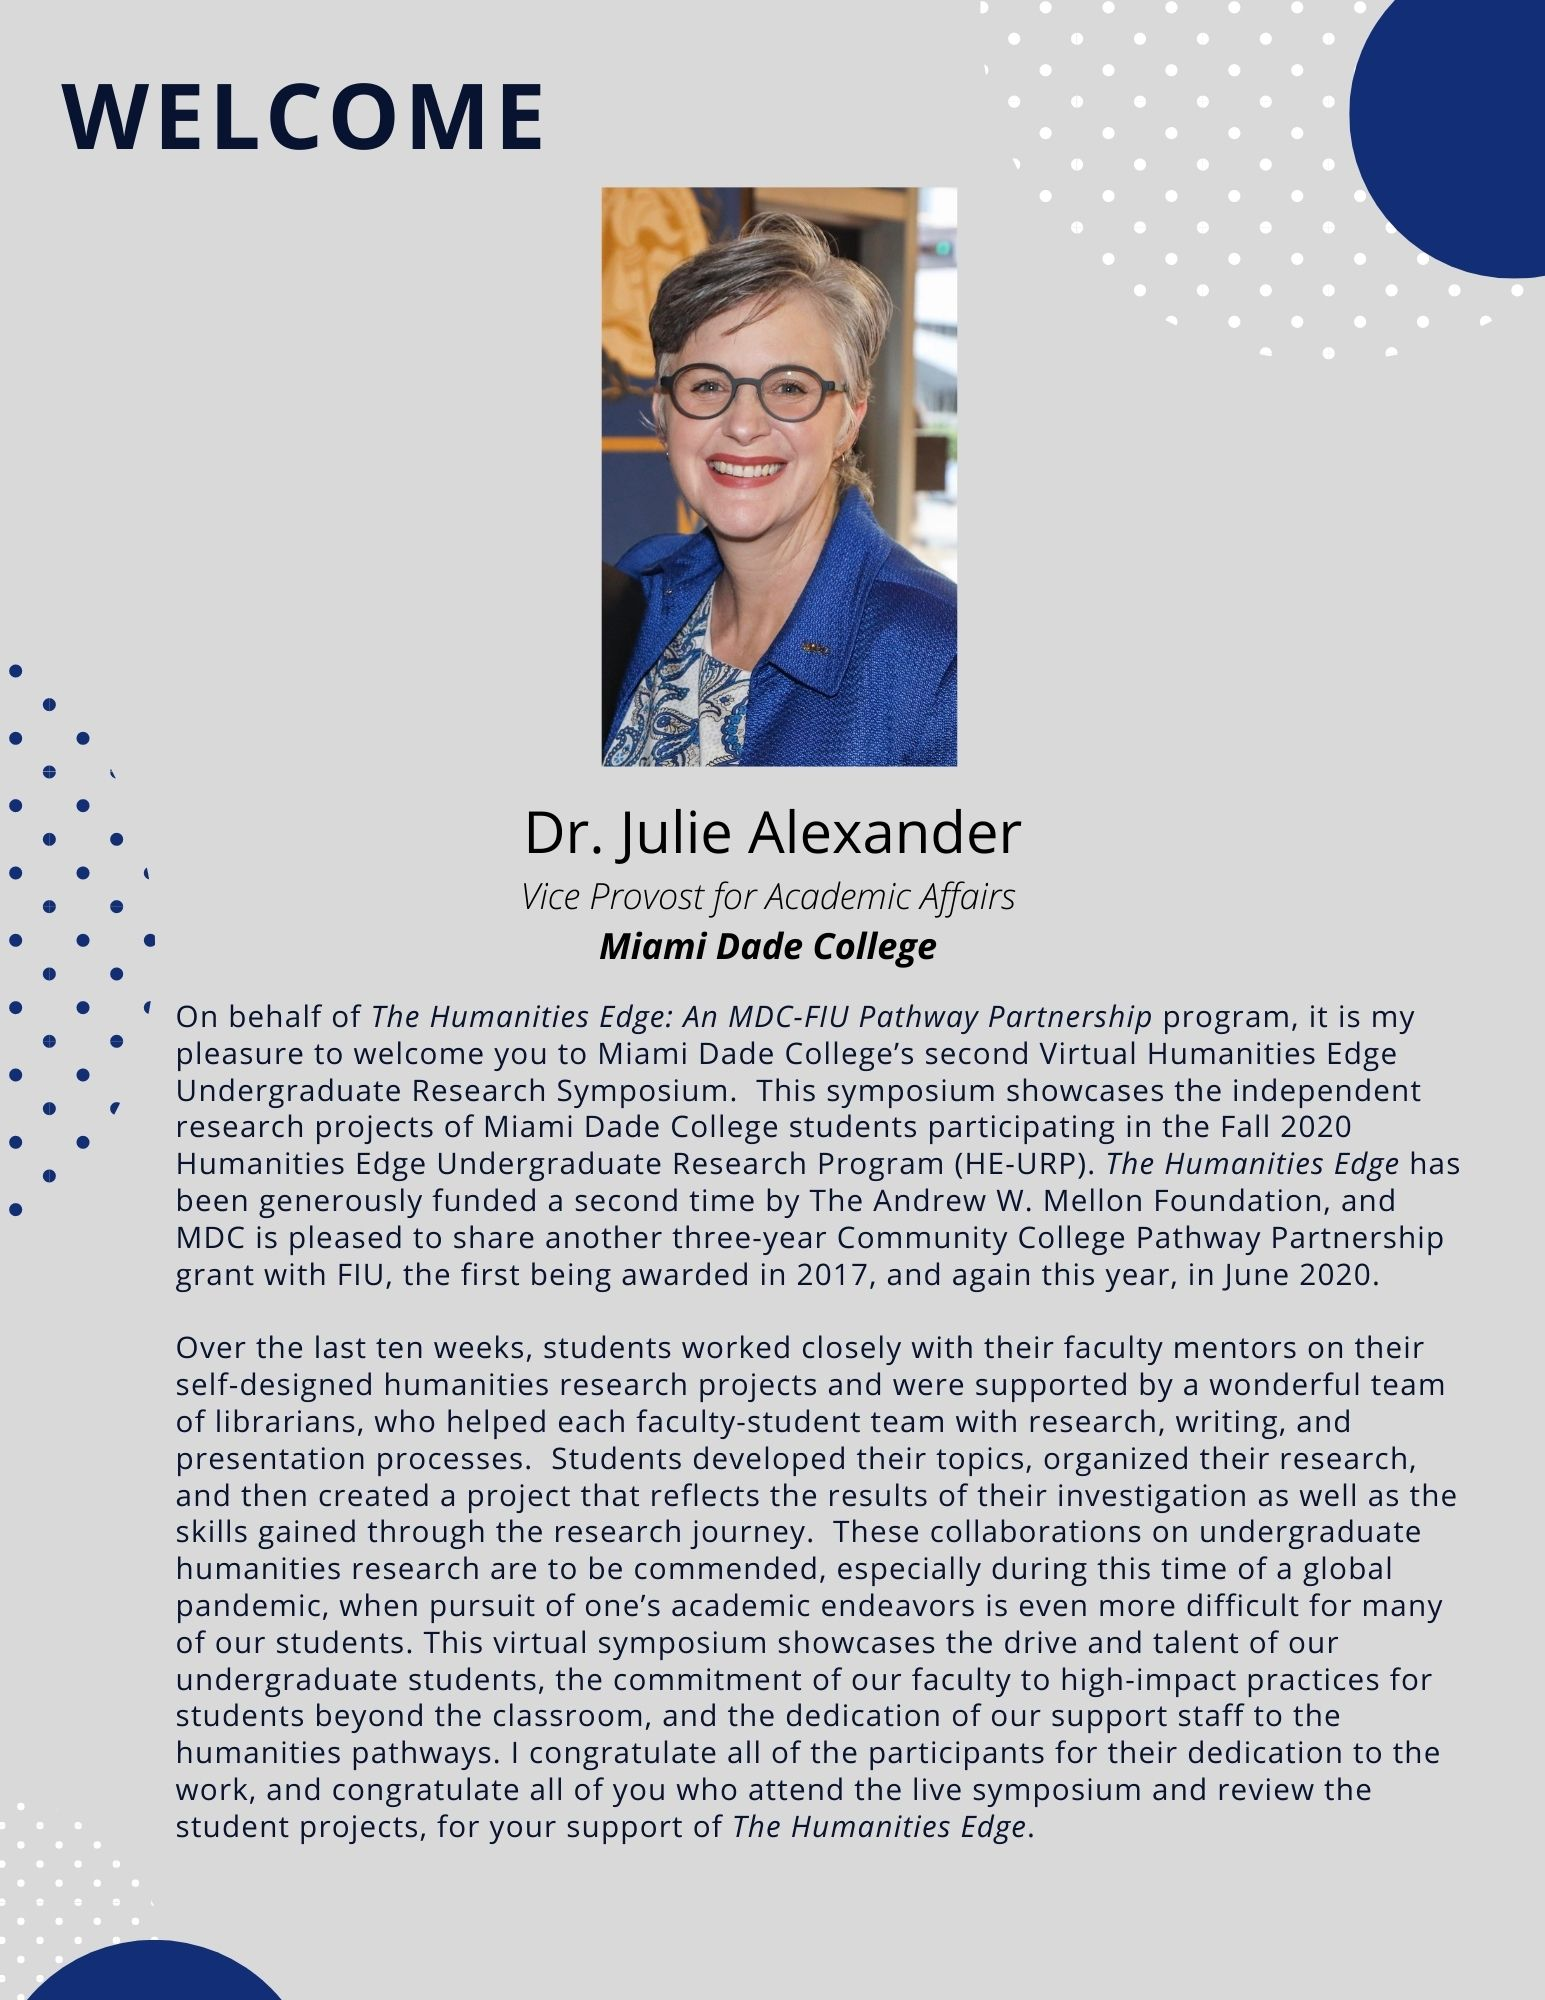 Welcome message from Dr. Julie Alexander, Vice Provost for Academic Affairs